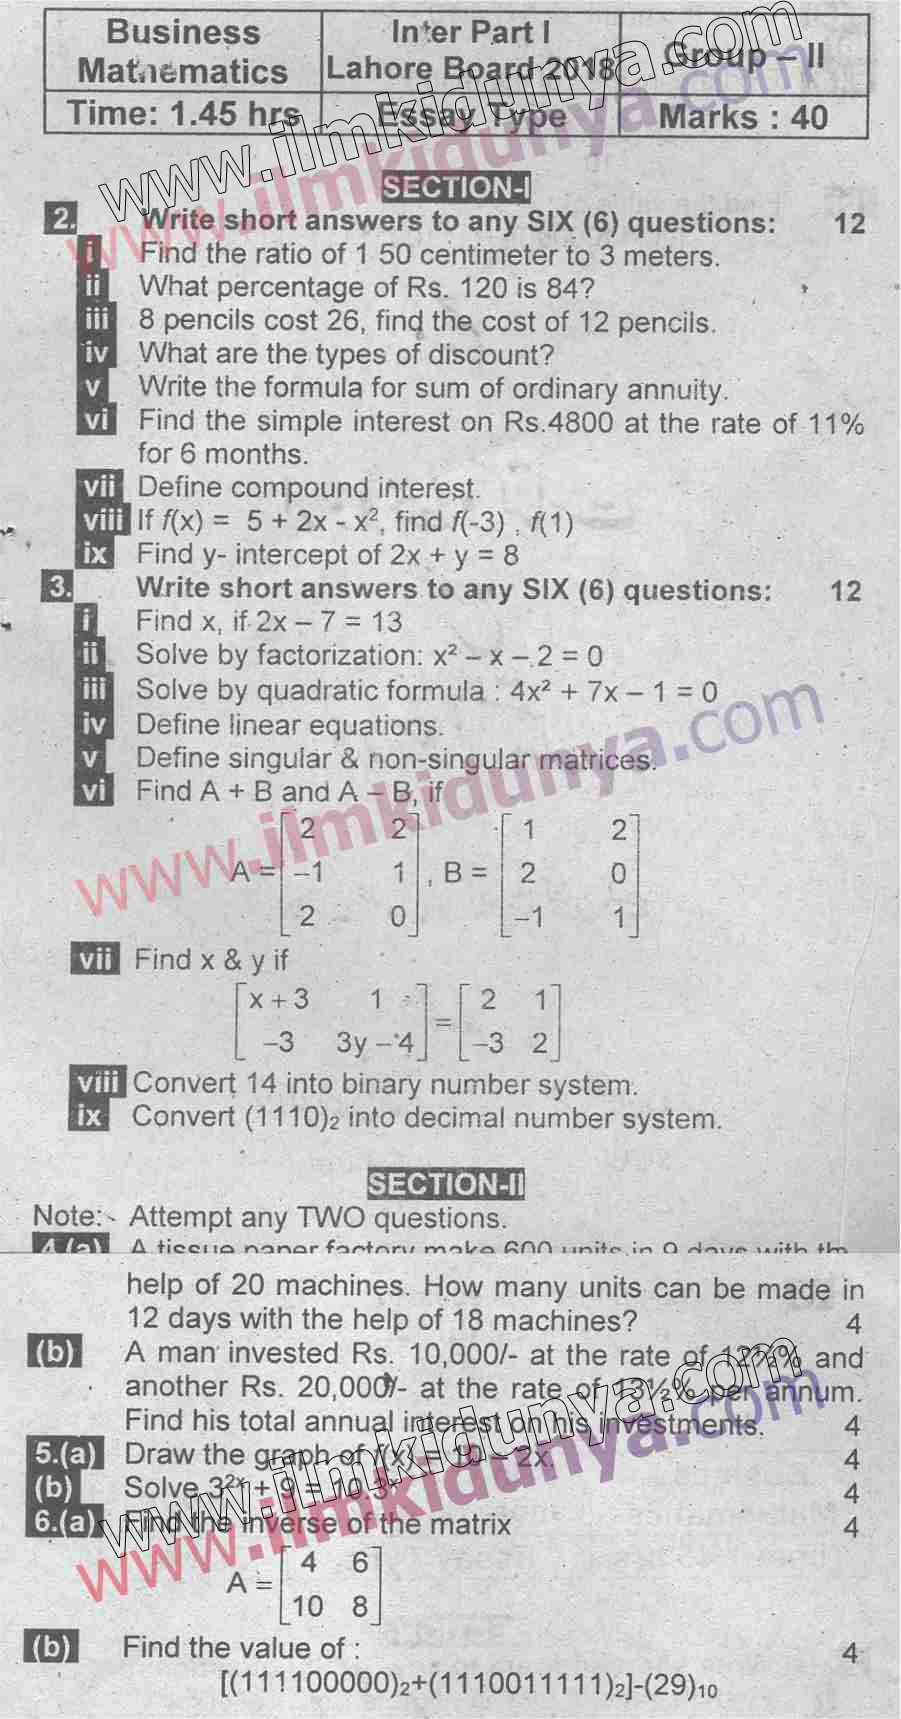 Past Papers 2018 Lahore Board ICom Part 1 Business